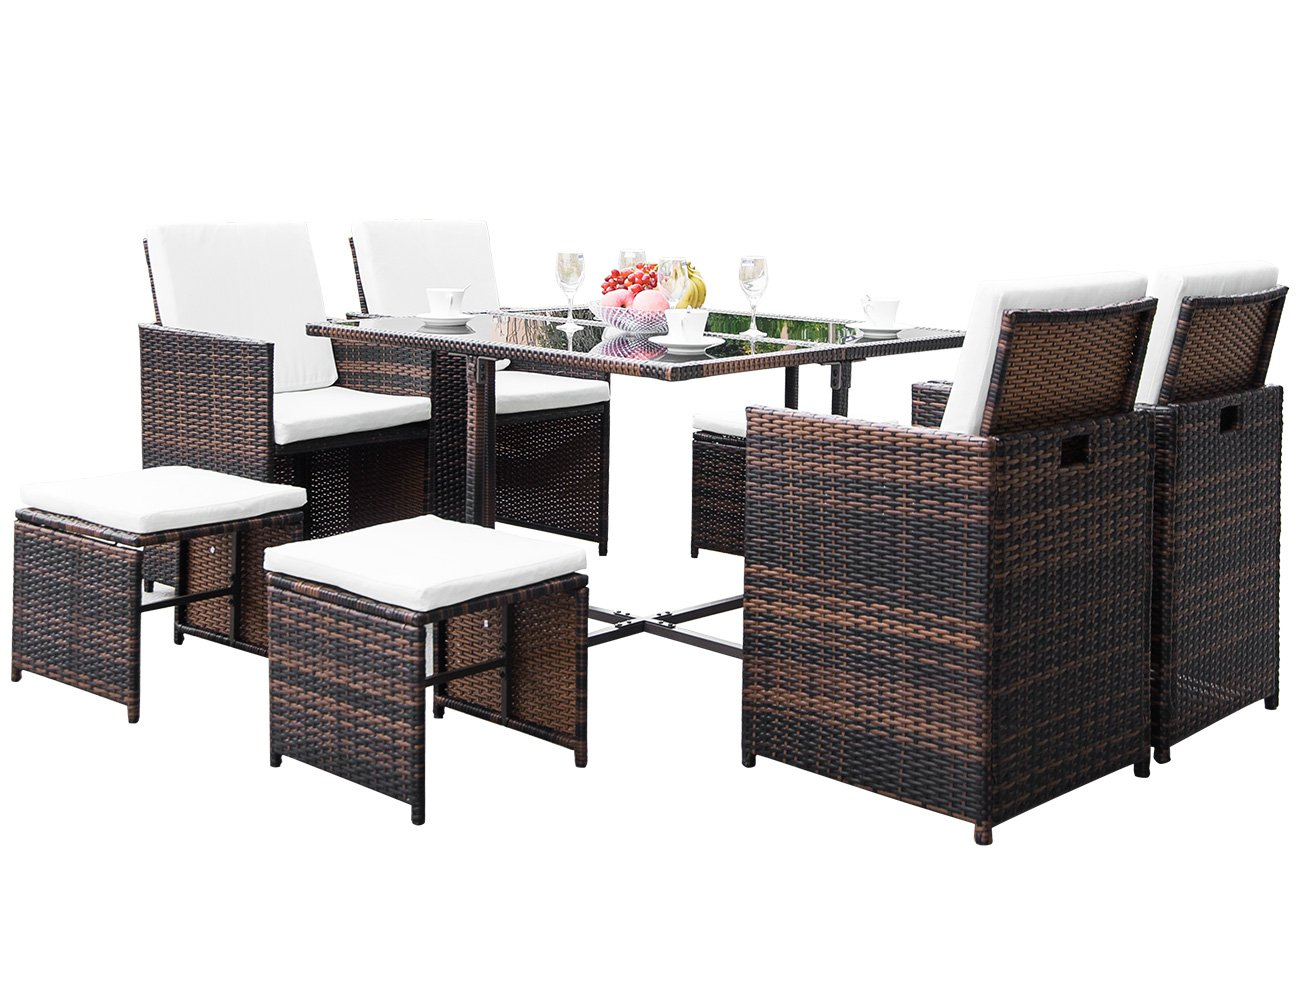 LZ LEISURE ZONE 9 Piece Patio Furniture Dining Set Outdoor Garden Wicker Rattan Dining Table Chairs Conversation Set with Cushions (Brown) - ✨Durable & Beautiful: Constructed with durable powder-coated steel frames and woven PE rattan to make the table and chairs durable enough for long time use. Perfectly highlights your patio or poolside décor. ✨Weather Resistant: Featuring sturdy construction and durable use, this patio outdoor wicker can well stand for both test of time and high temperature, which is perfect for any outdoor and indoor use. ✨Effortlessly Clean Up: Table with tempered glass adds a sophisticated touch and allows you to places drinks, meals and other accessories on top. And you can clean it easily with just a wipe when there is water strain on it. - patio-furniture, dining-sets-patio-funiture, patio - 71PdFxT1YML -